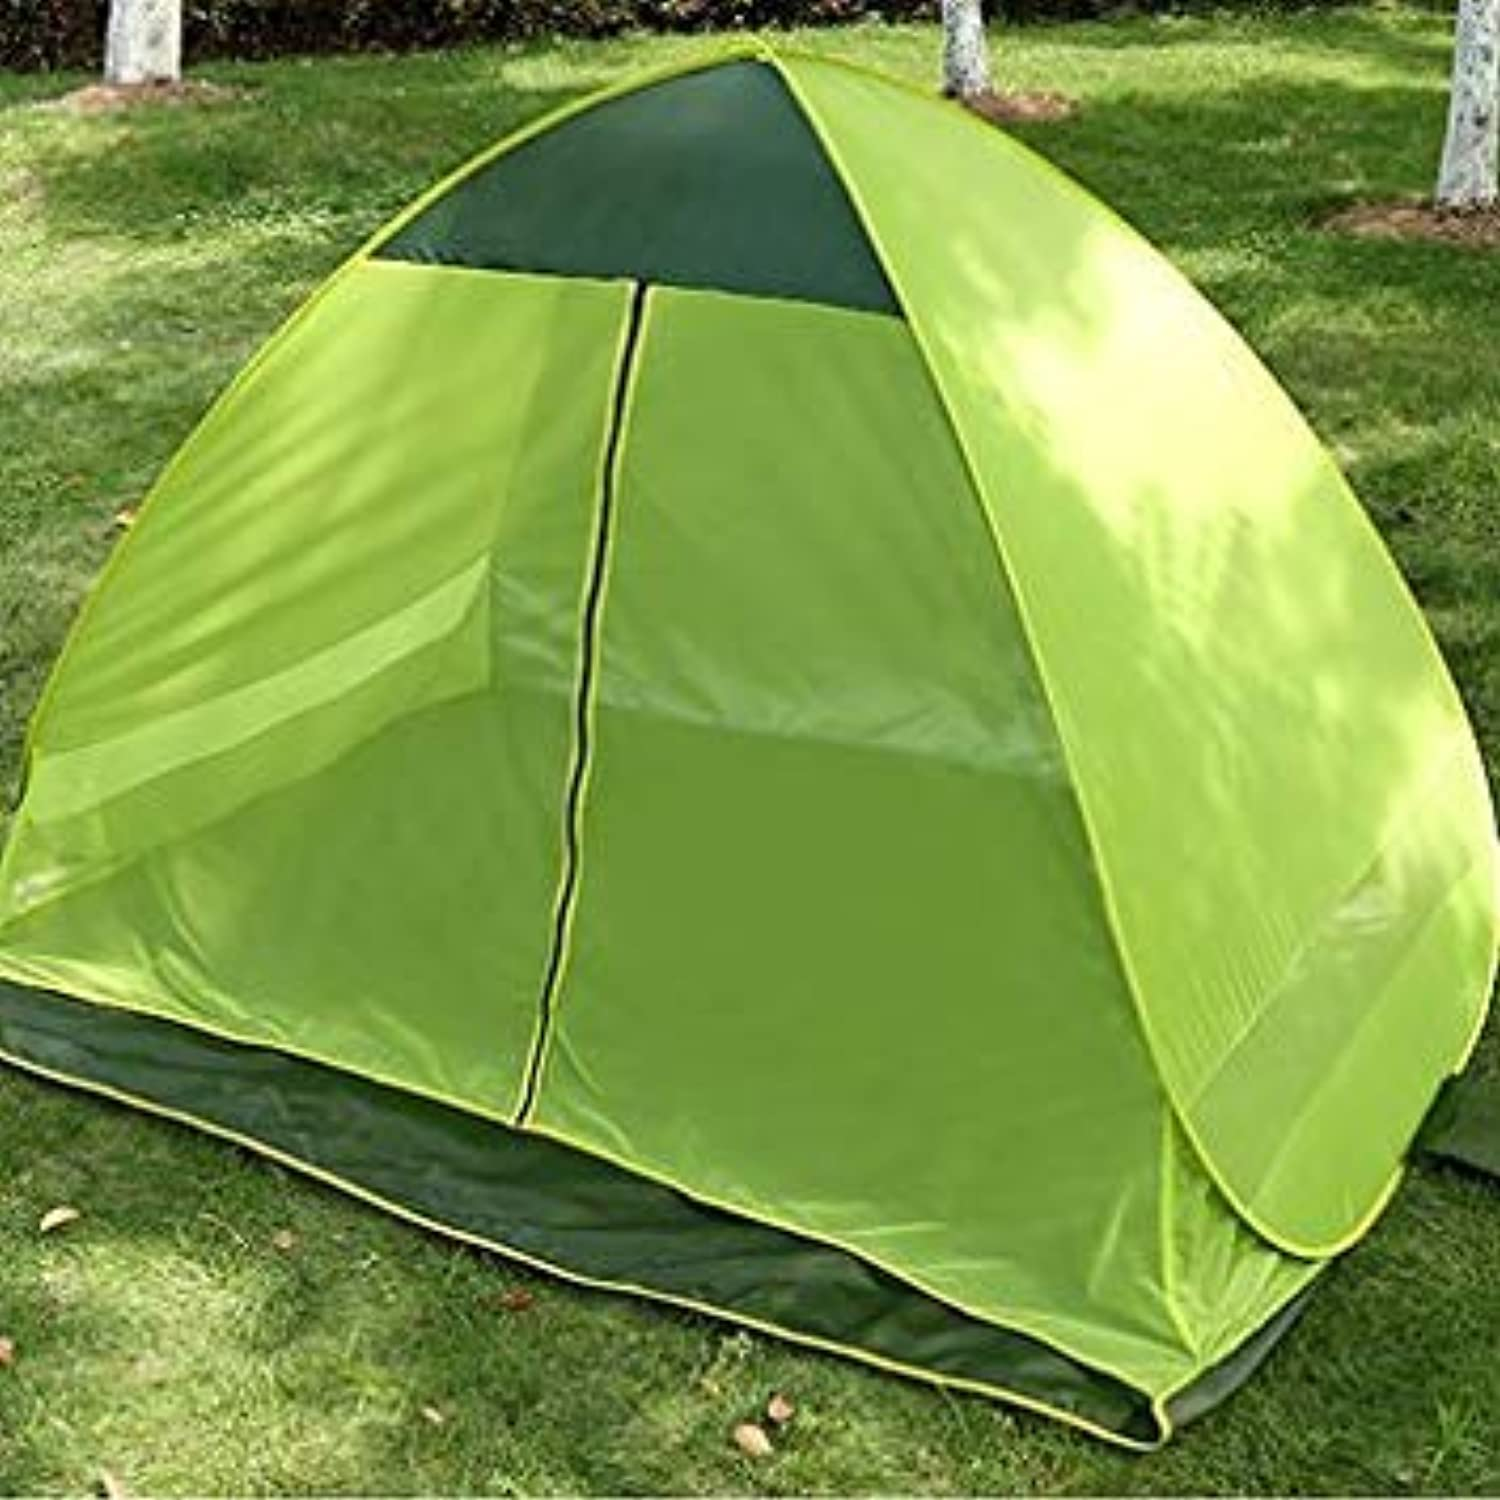 Outdoor 3-4 Persons Waterproof Tent Quick Open Canopy UV Sun Shelter for Camping Hiking